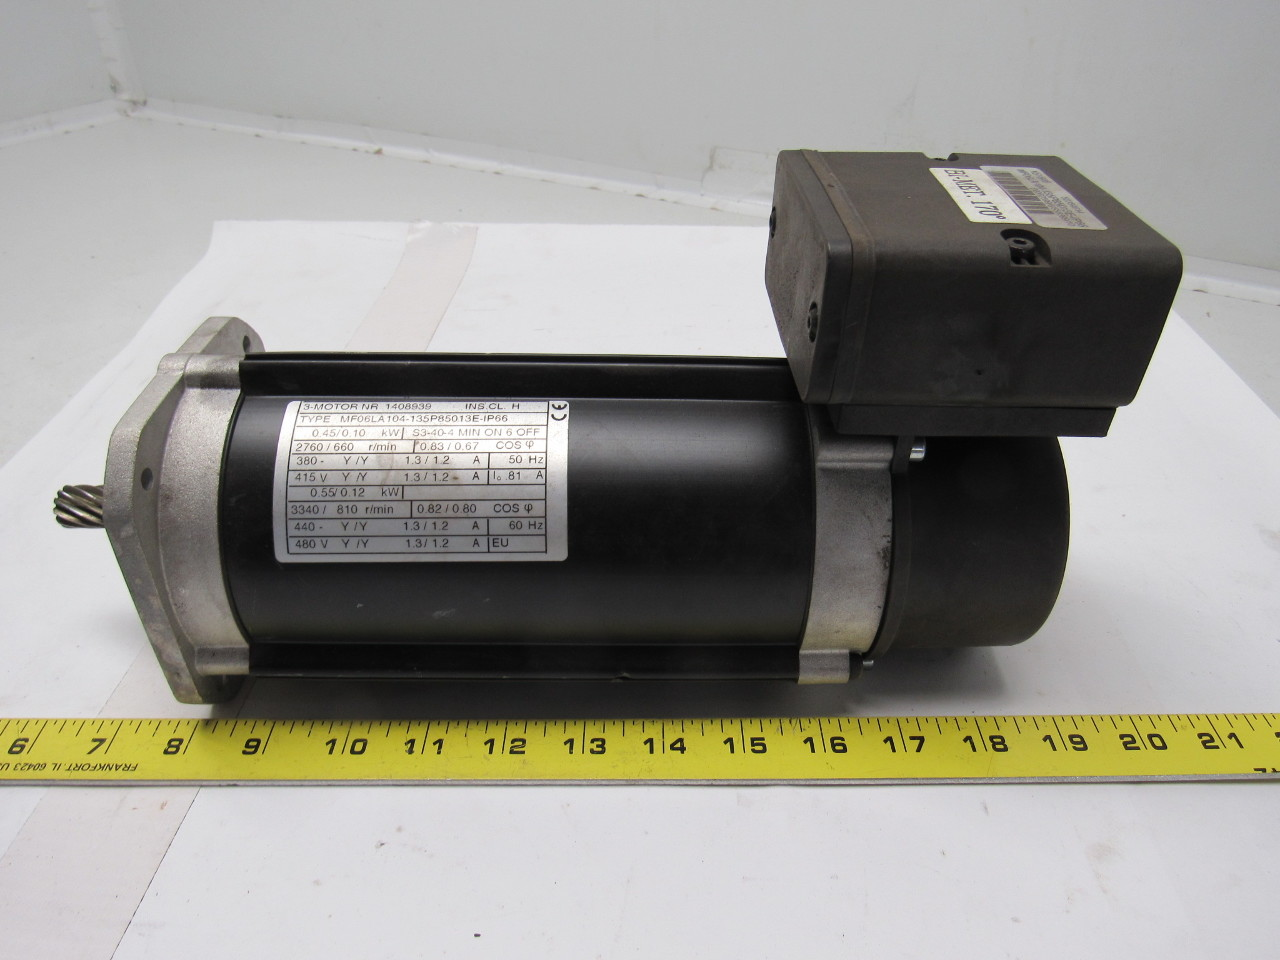 R m robbins myers mf06la104 135p85013e ip66 52354614 for Robbins and myers replacement motors